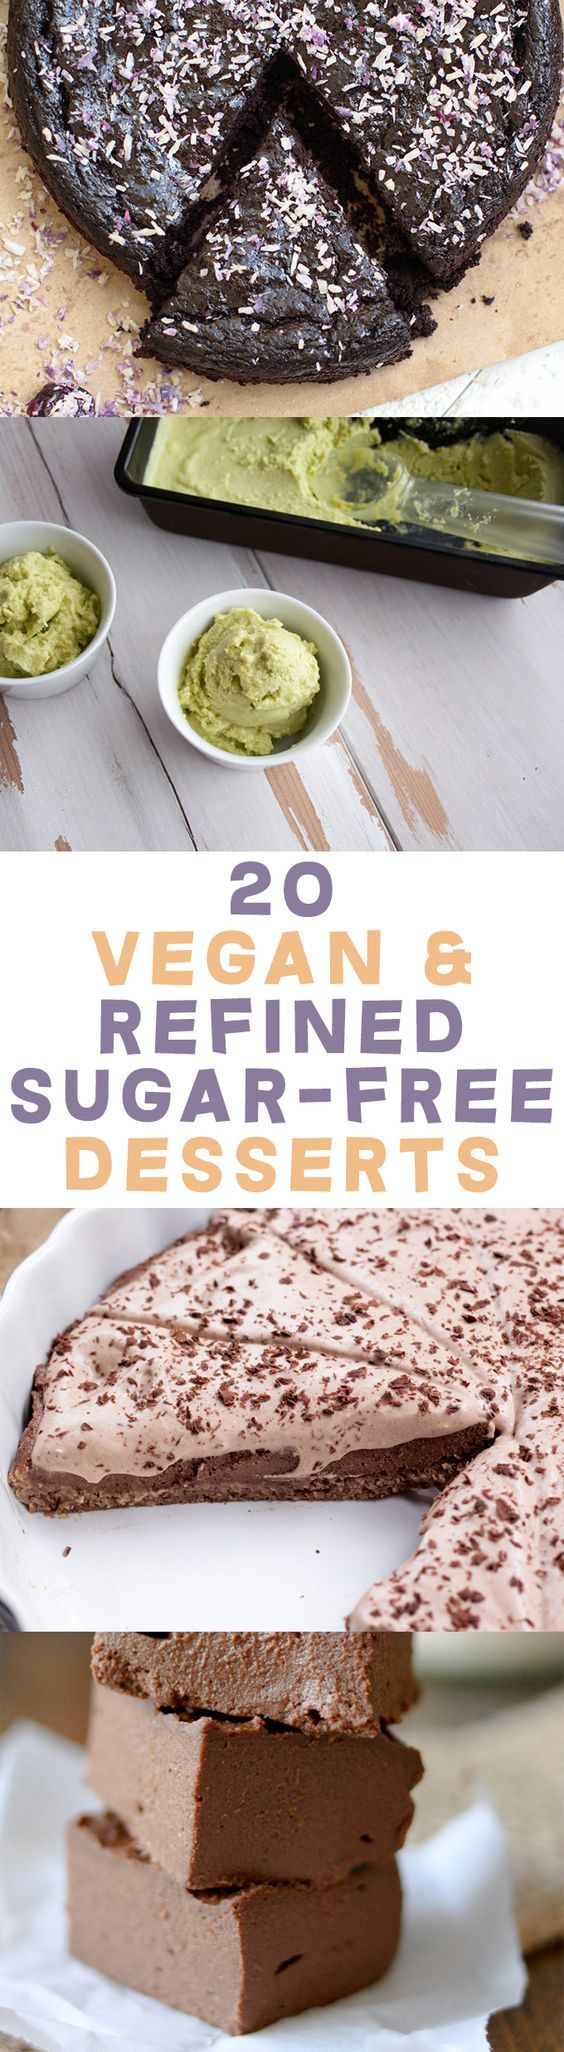 17 Best images about Sugar free desserts on Pinterest ...